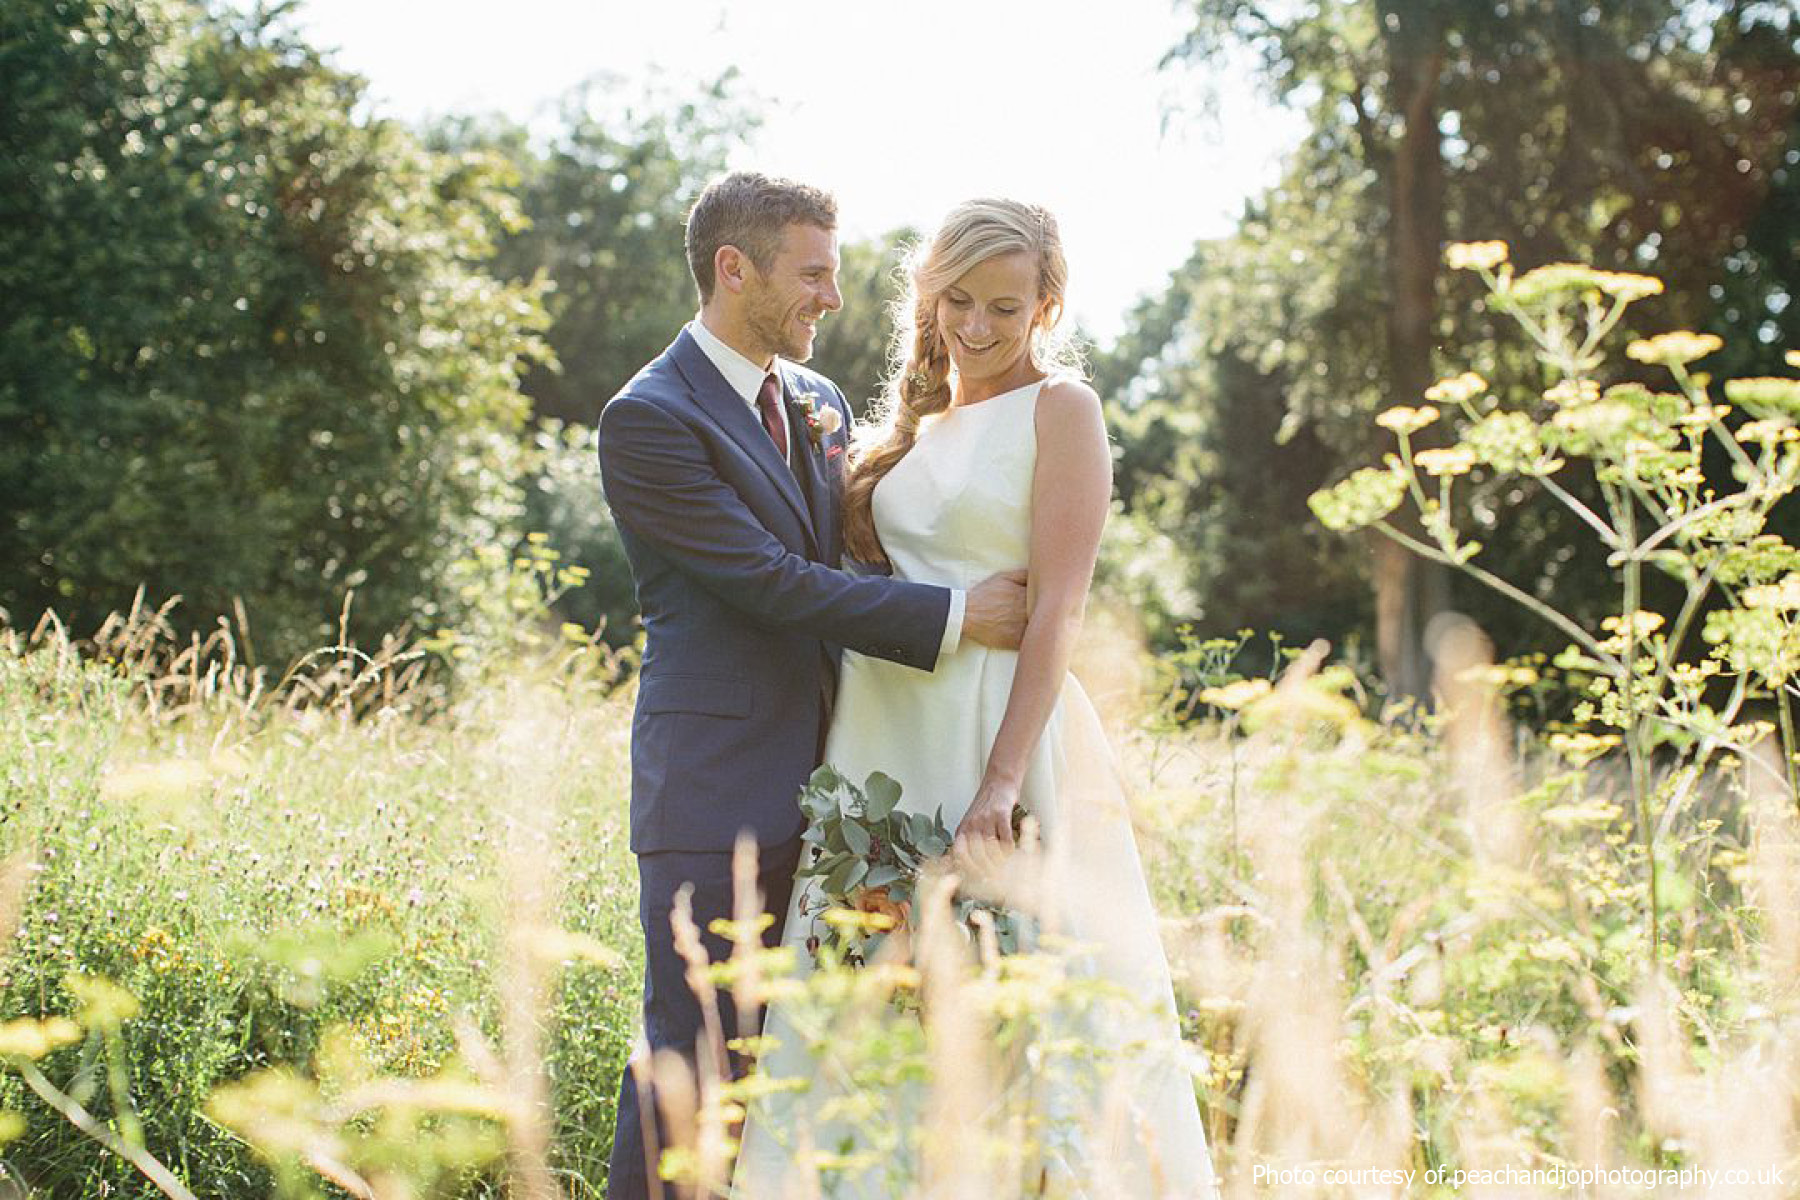 Outdoor wedding at Phoenice Fields